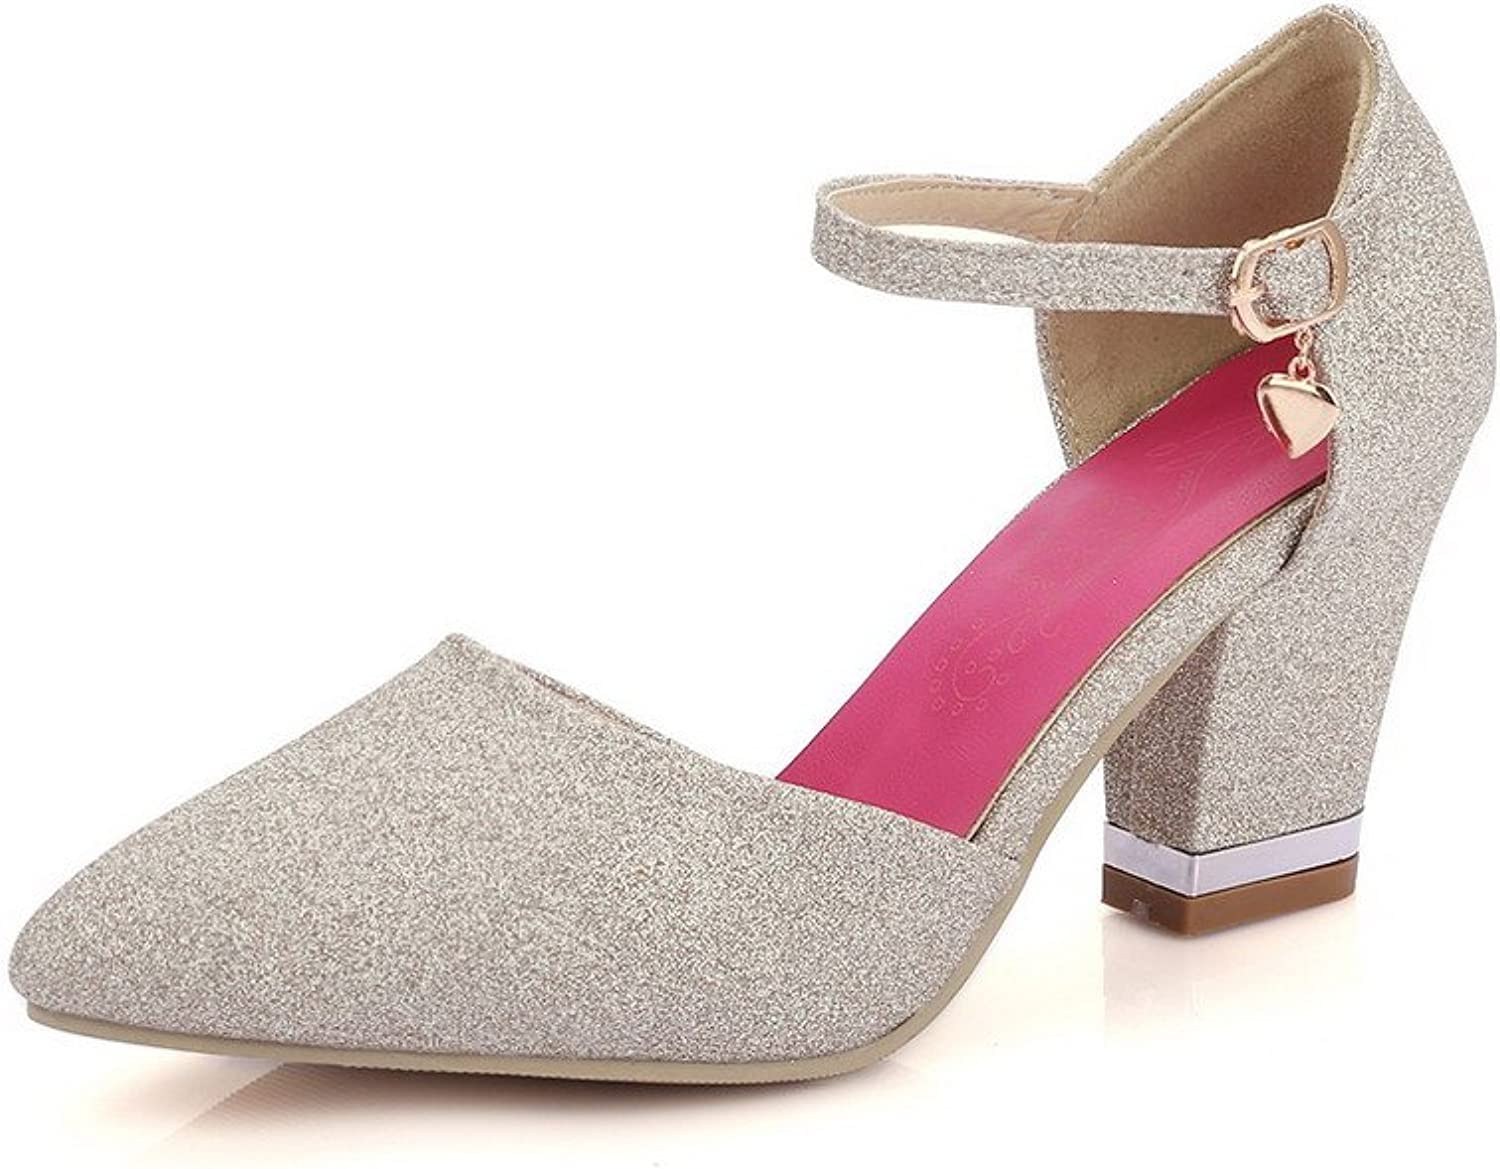 AllhqFashion Women's Buckle Blend Materials Pointed Closed Toe High Heels Solid Pumps shoes